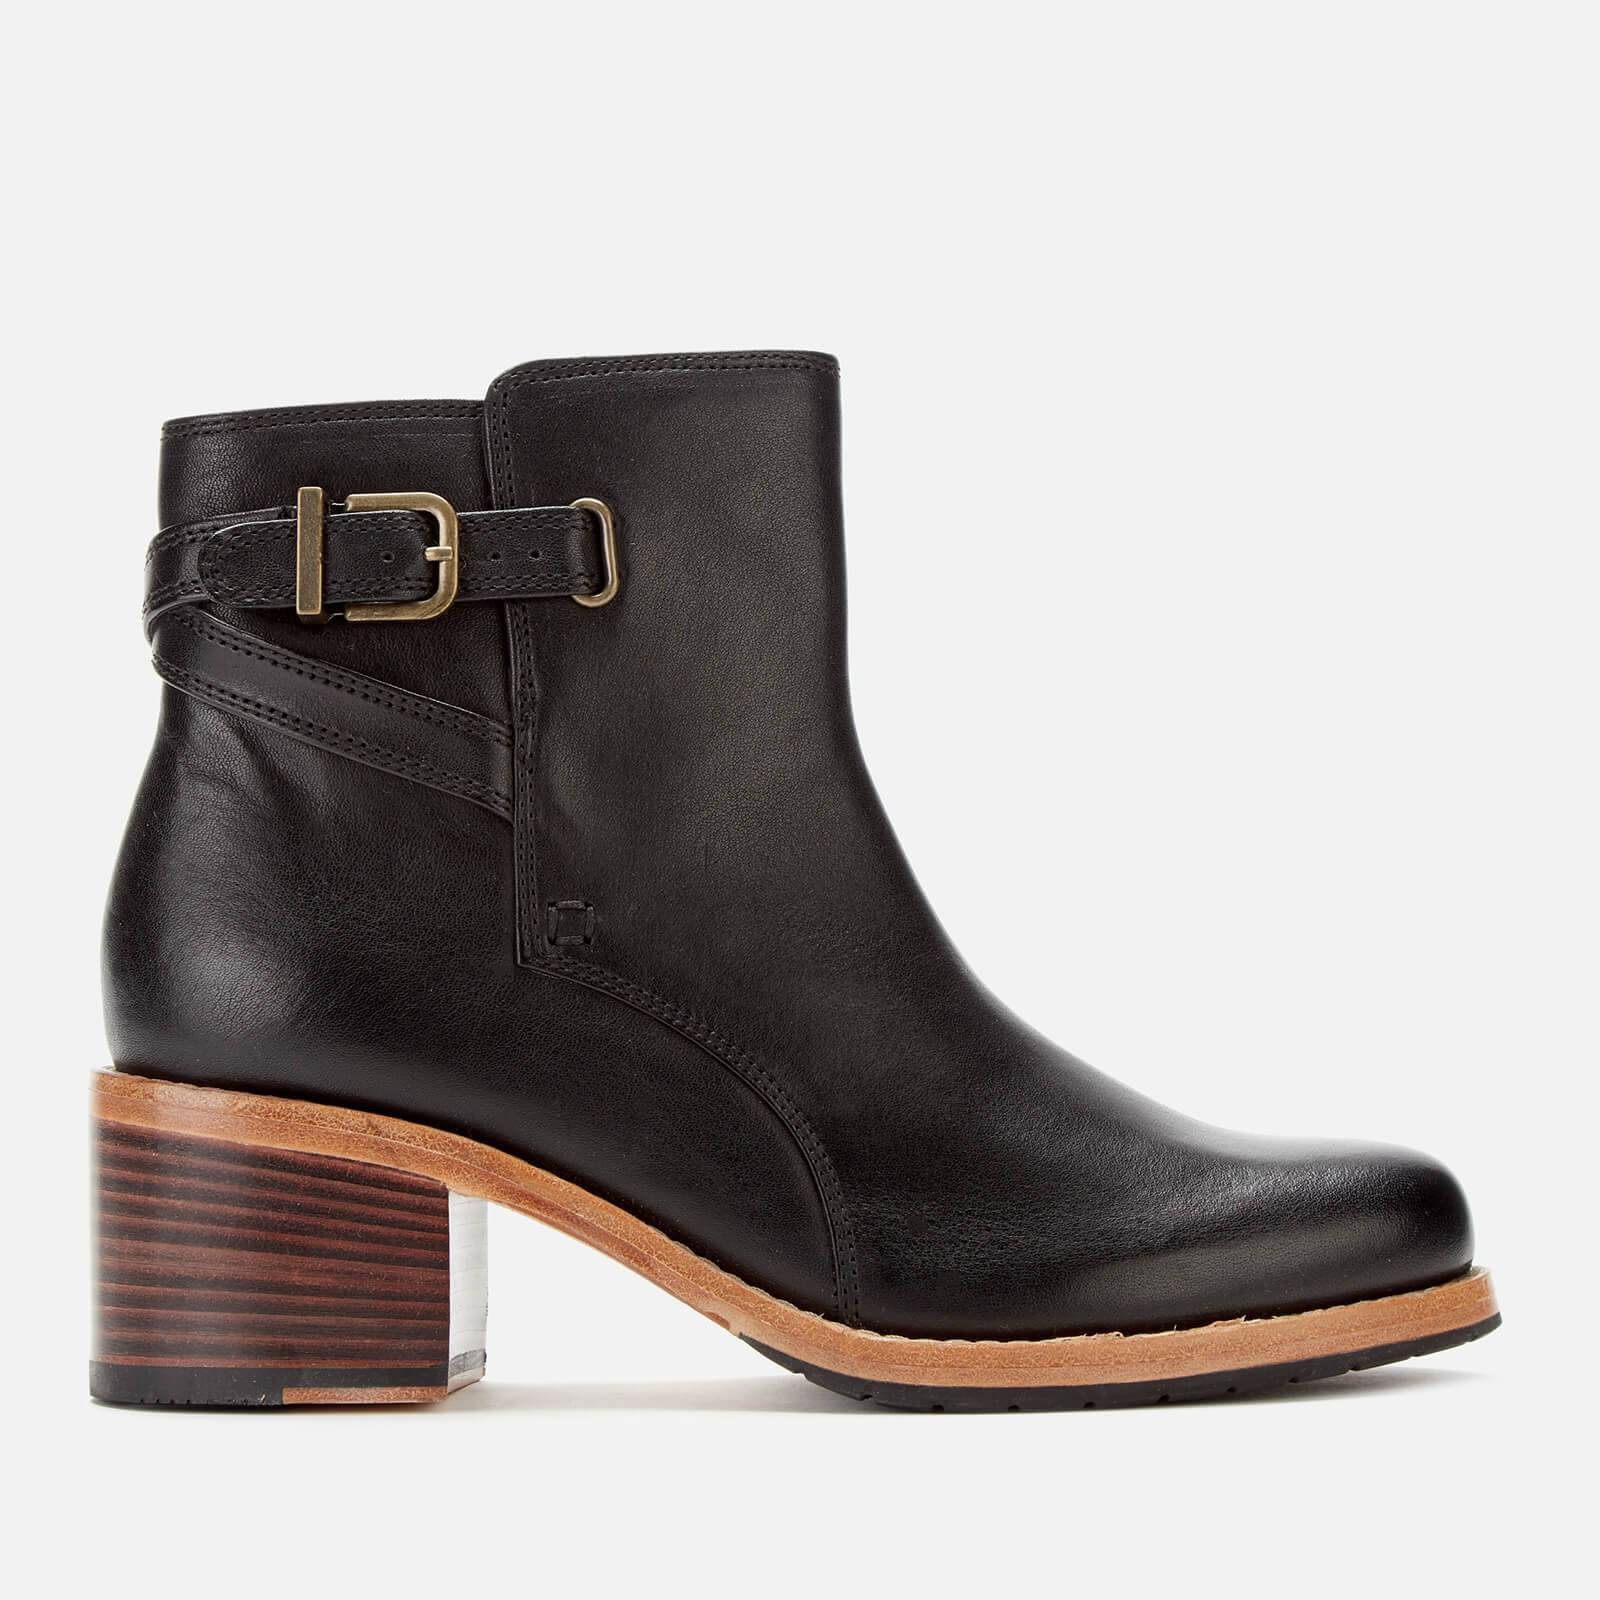 Clarks Women's Clarkdale Jax Leather Heeled Ankle Boots - Black - UK 7